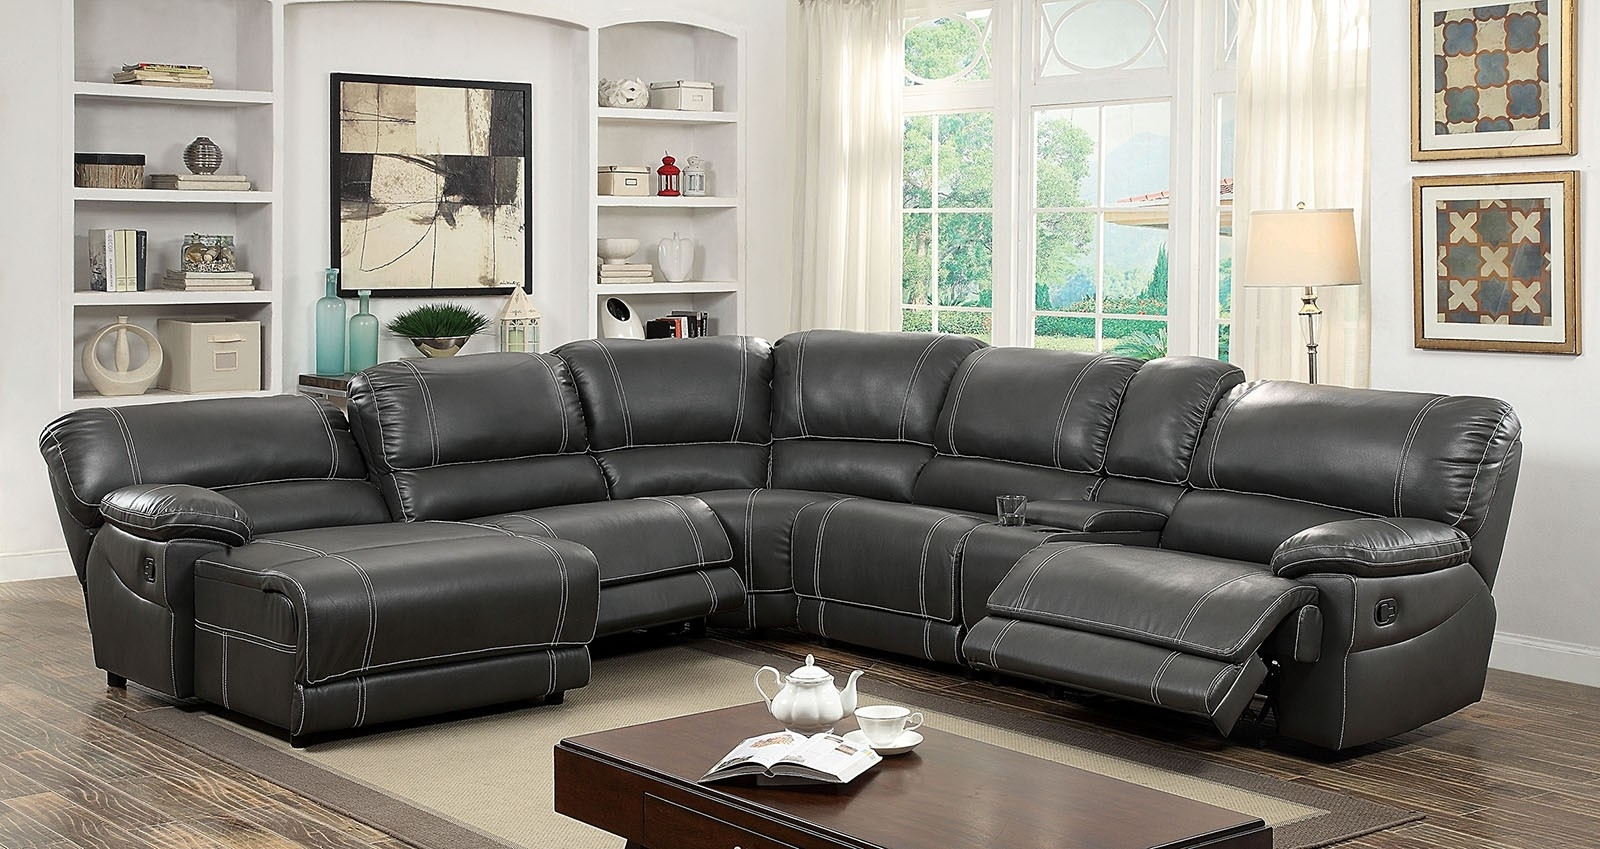 Grey Reclining Sectional - Implantologiabogota.co in Calder Grey 6 Piece Manual Reclining Sectionals (Image 15 of 30)